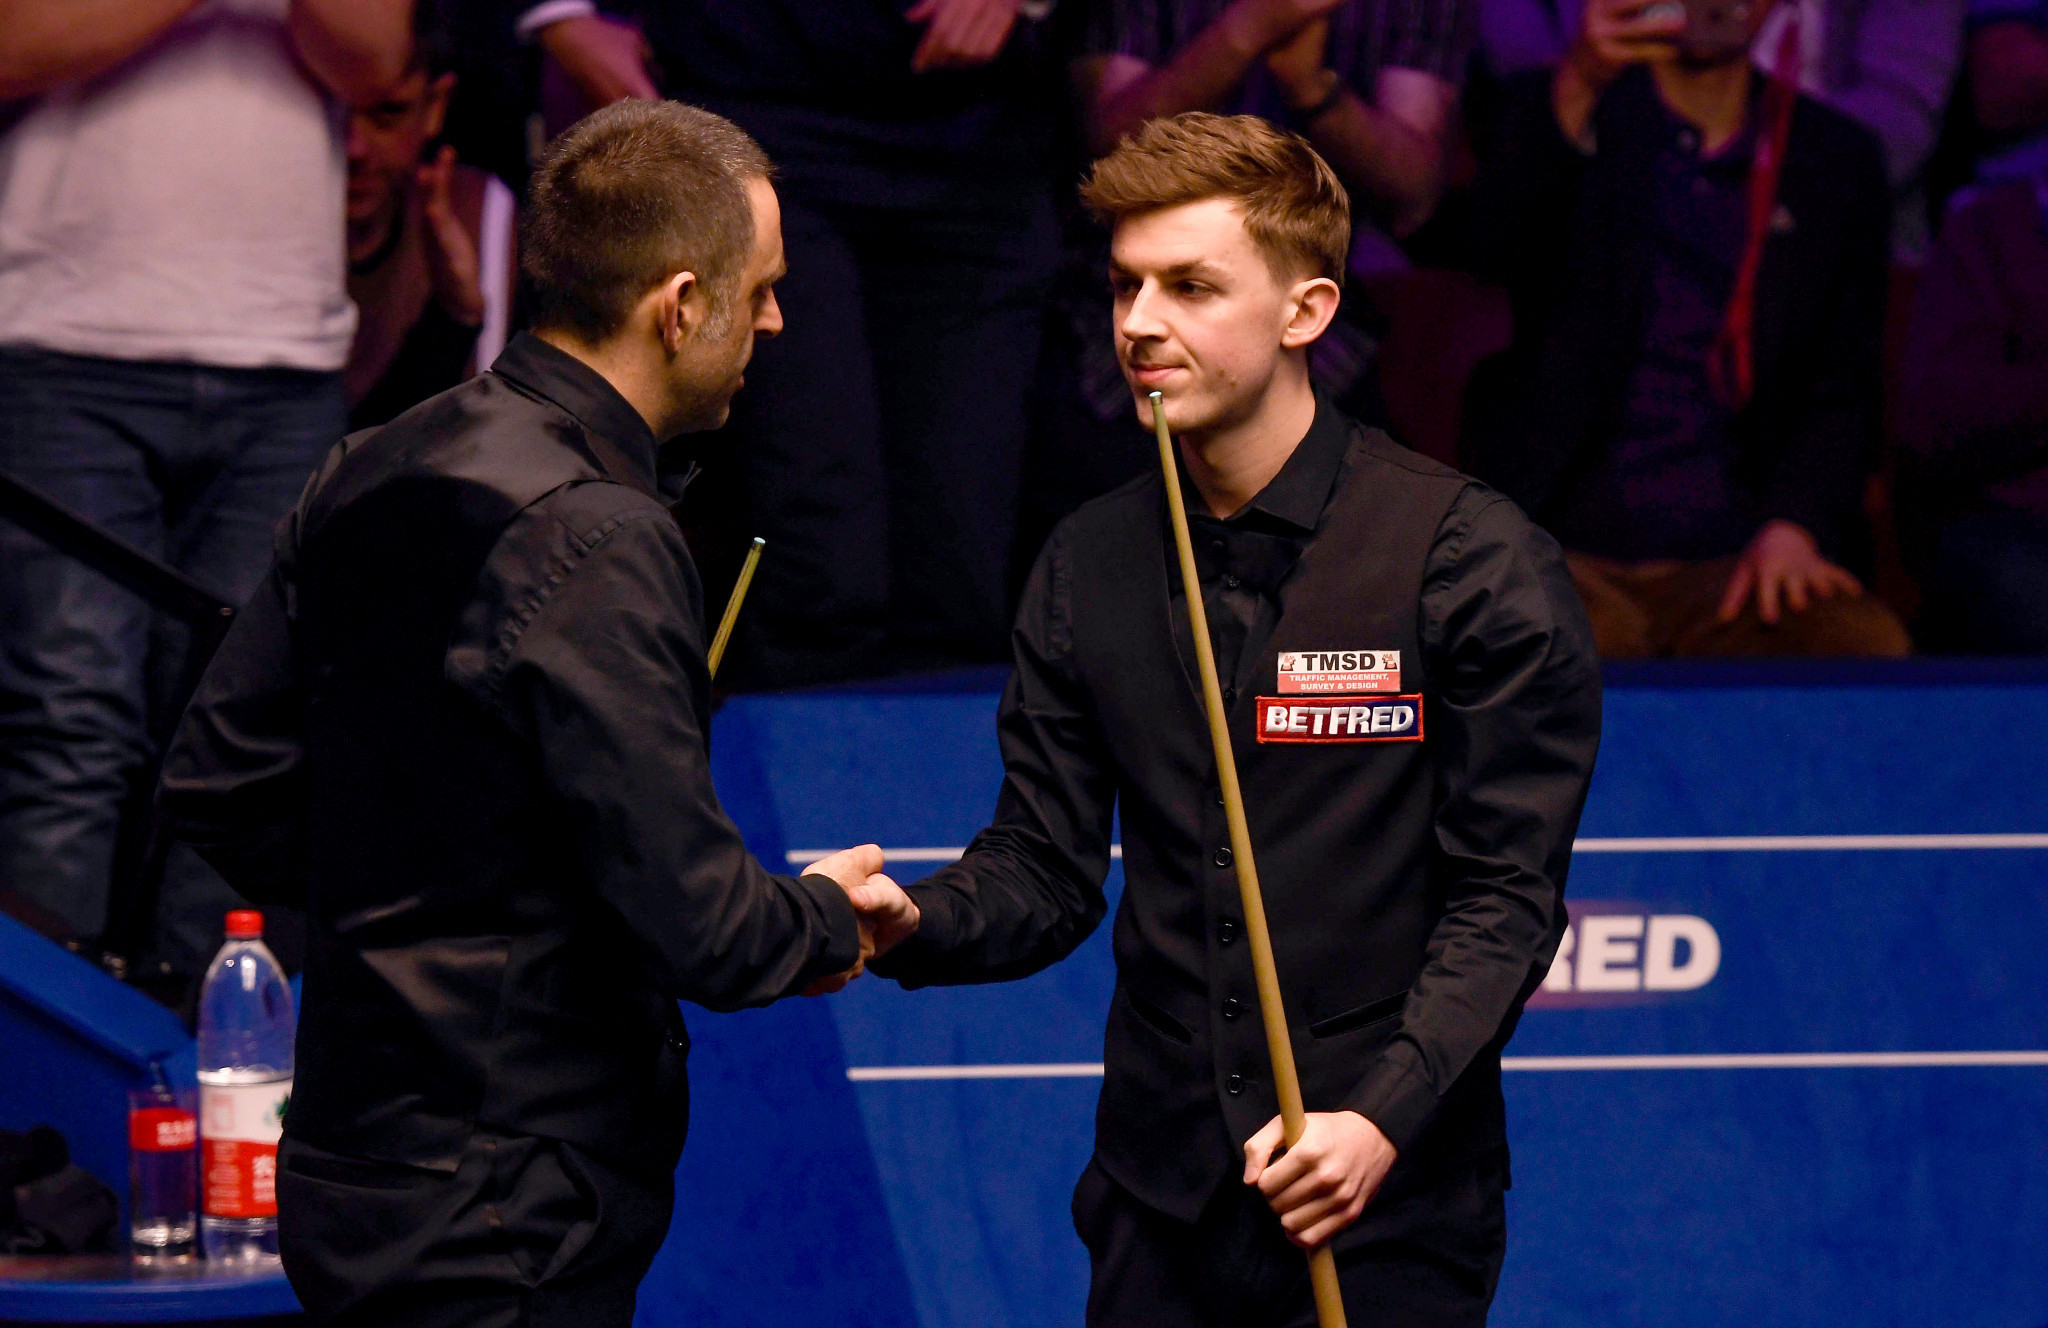 O'Sullivan loses first-round match against amateur in World Snooker Championships' biggest shock